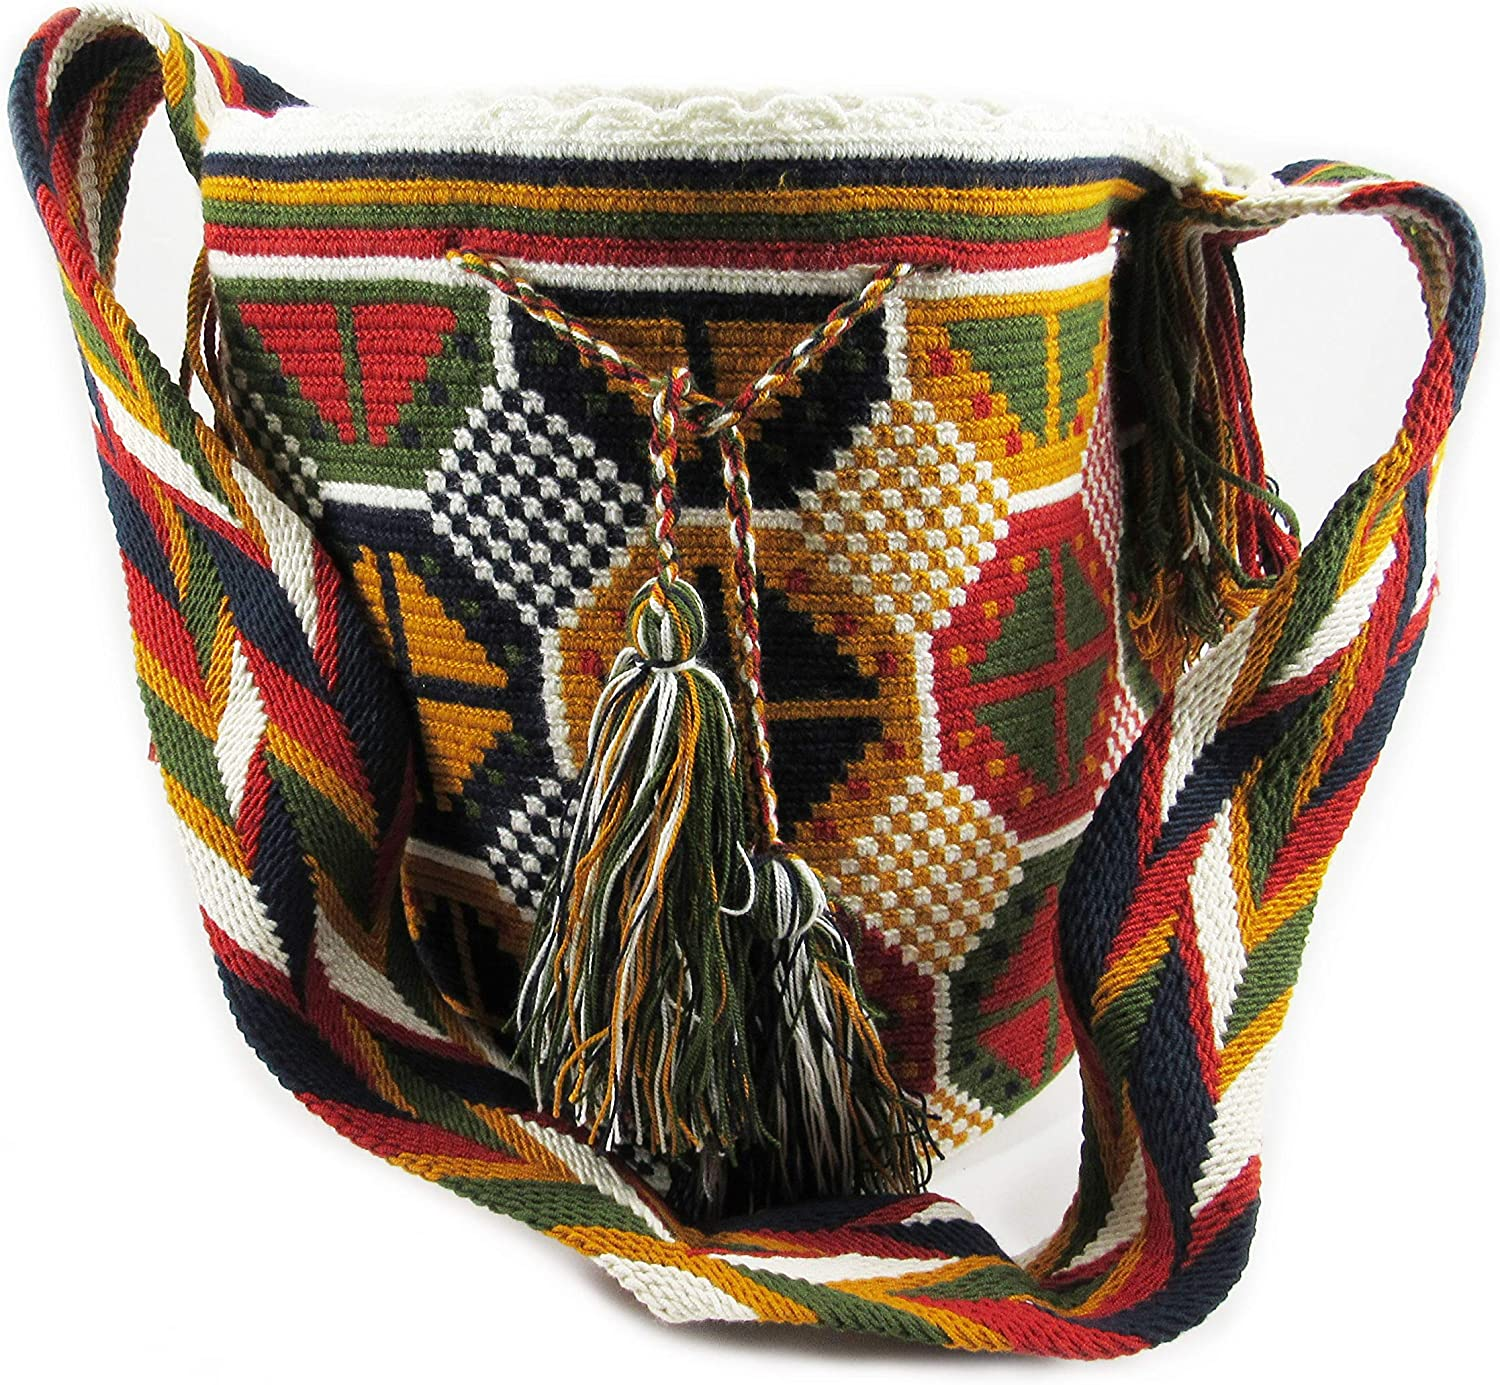 BOHEMIAN HANDBAG FOR WOMEN, BOHO WAYUU SHOULDER VINTAGE BACKPACK BY MACHU PICCHU STORE